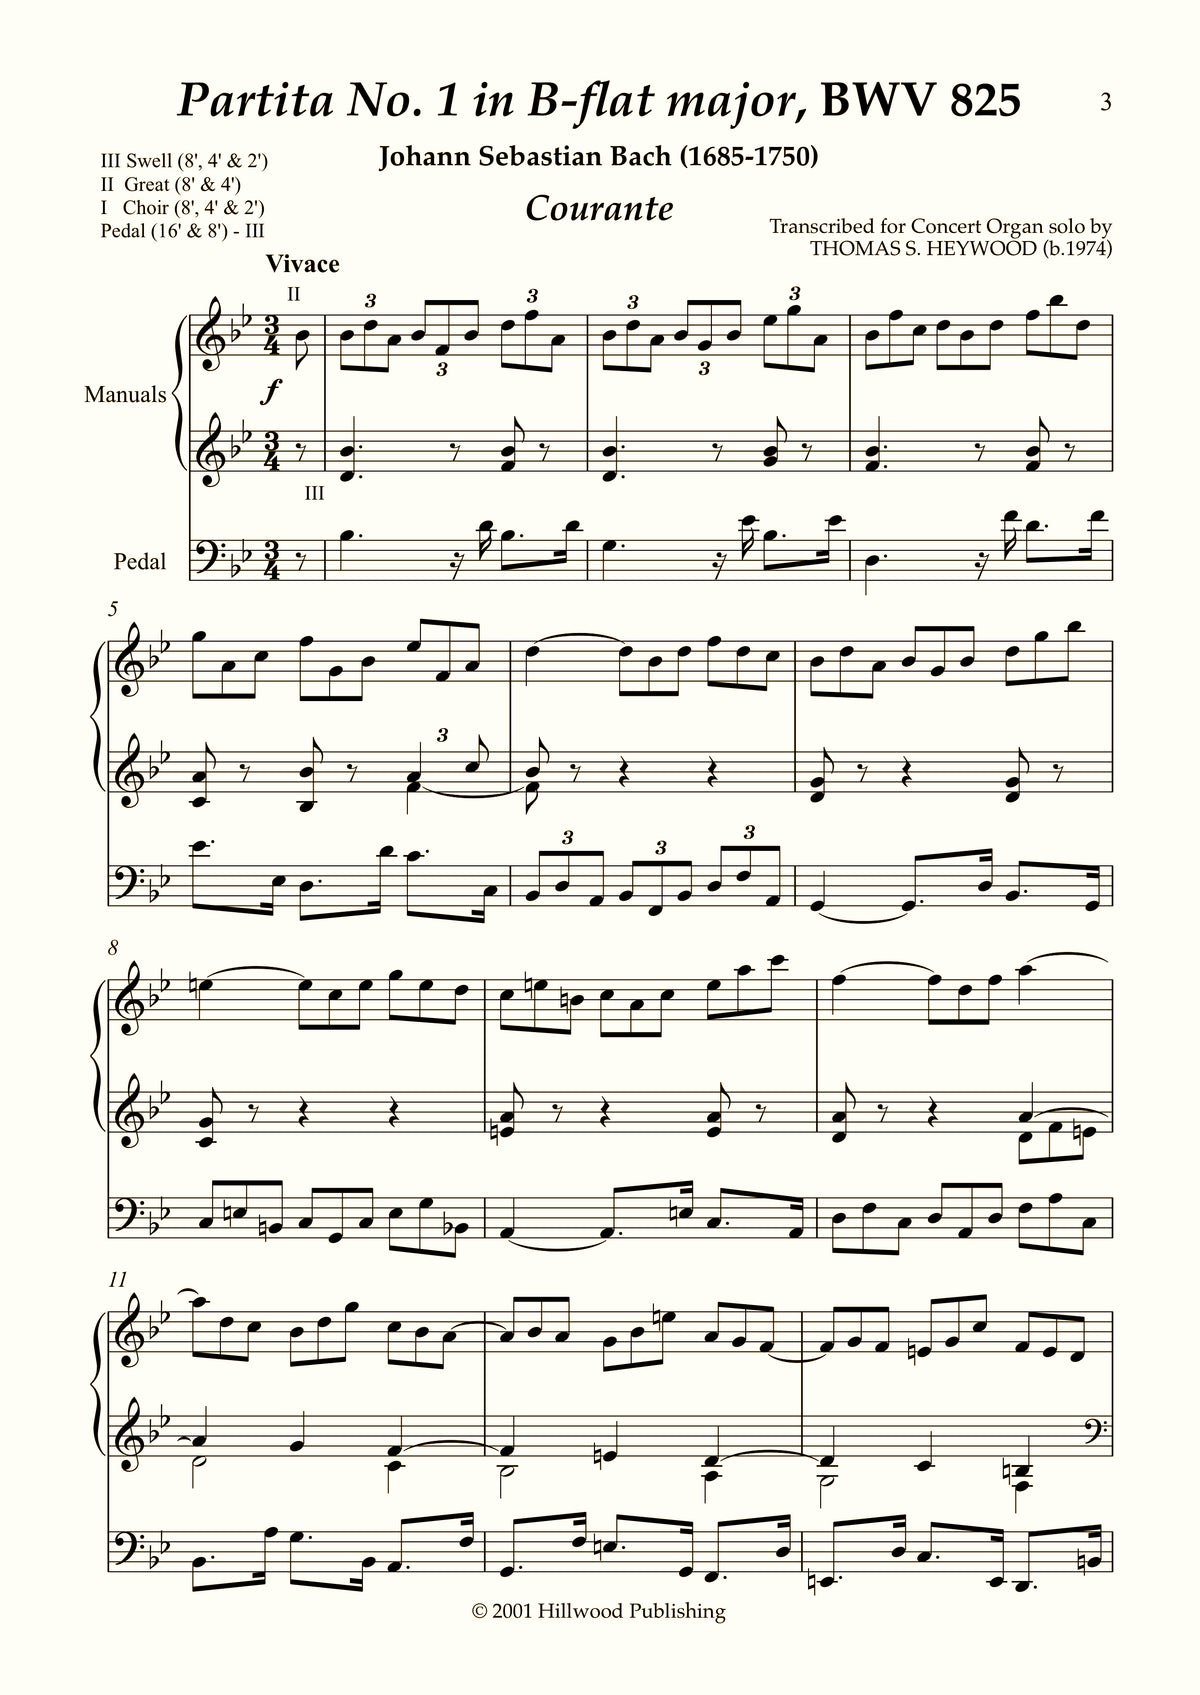 Bach/Heywood - Courante from Partita No. 1 in B-flat major, BWV 825 (Score) | Thomas Heywood | Concert Organ International